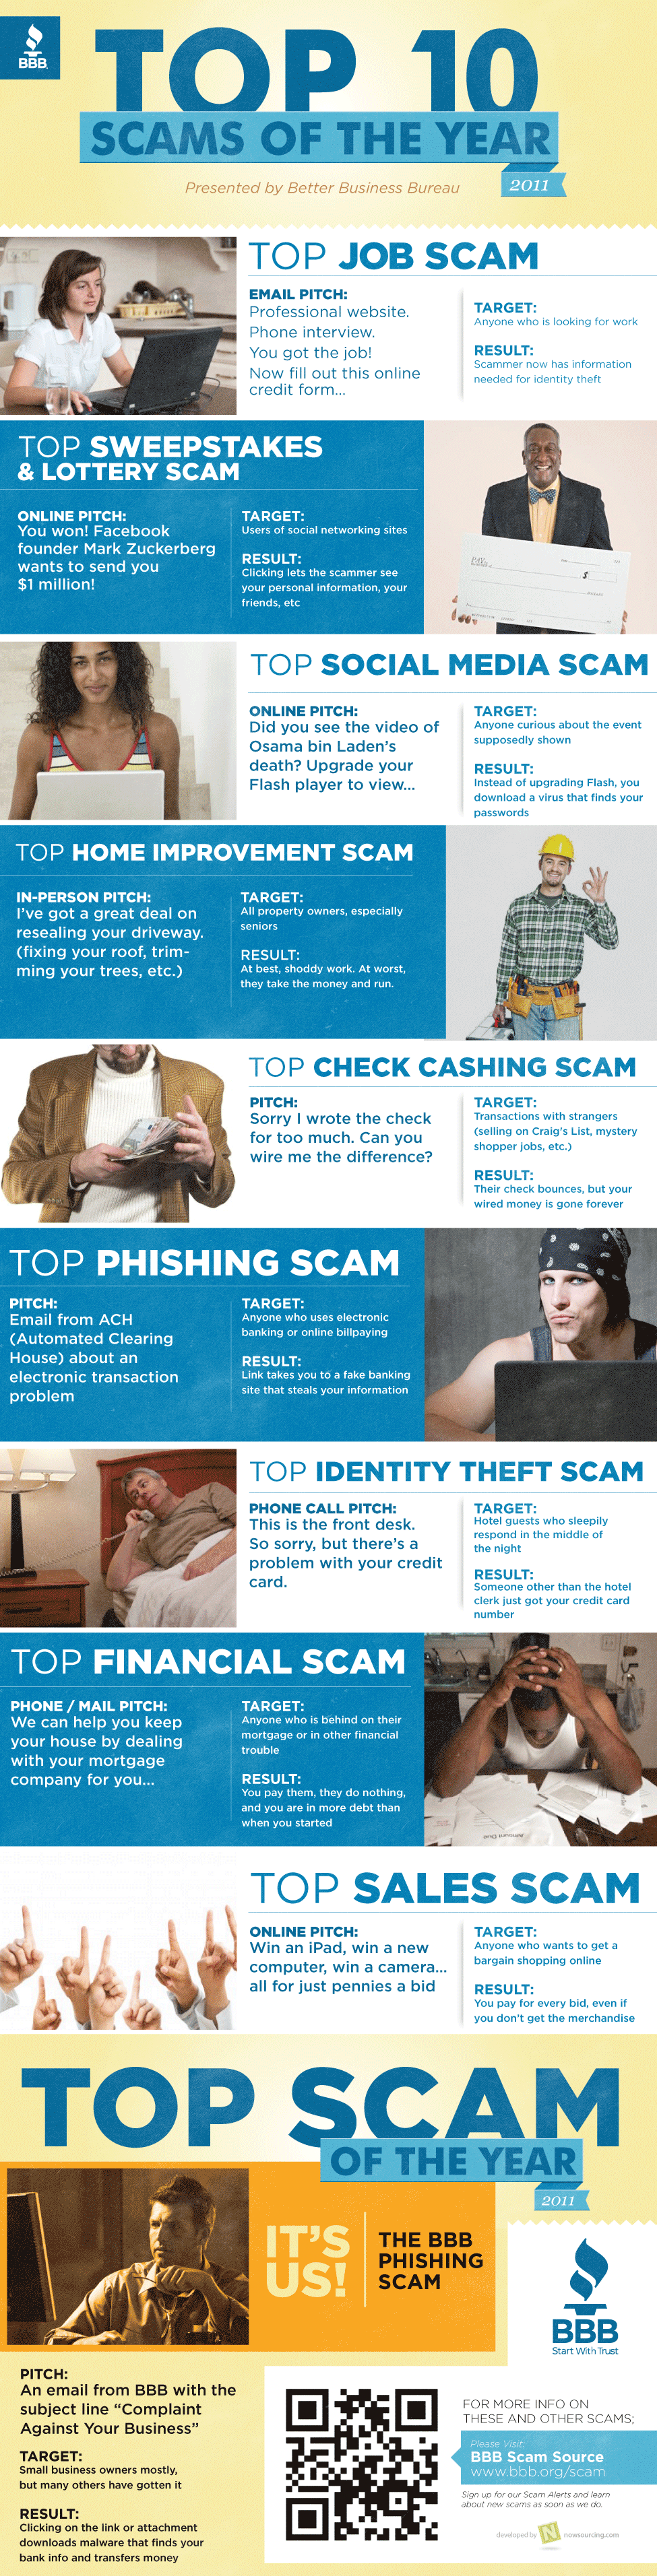 Top Scams of 2011